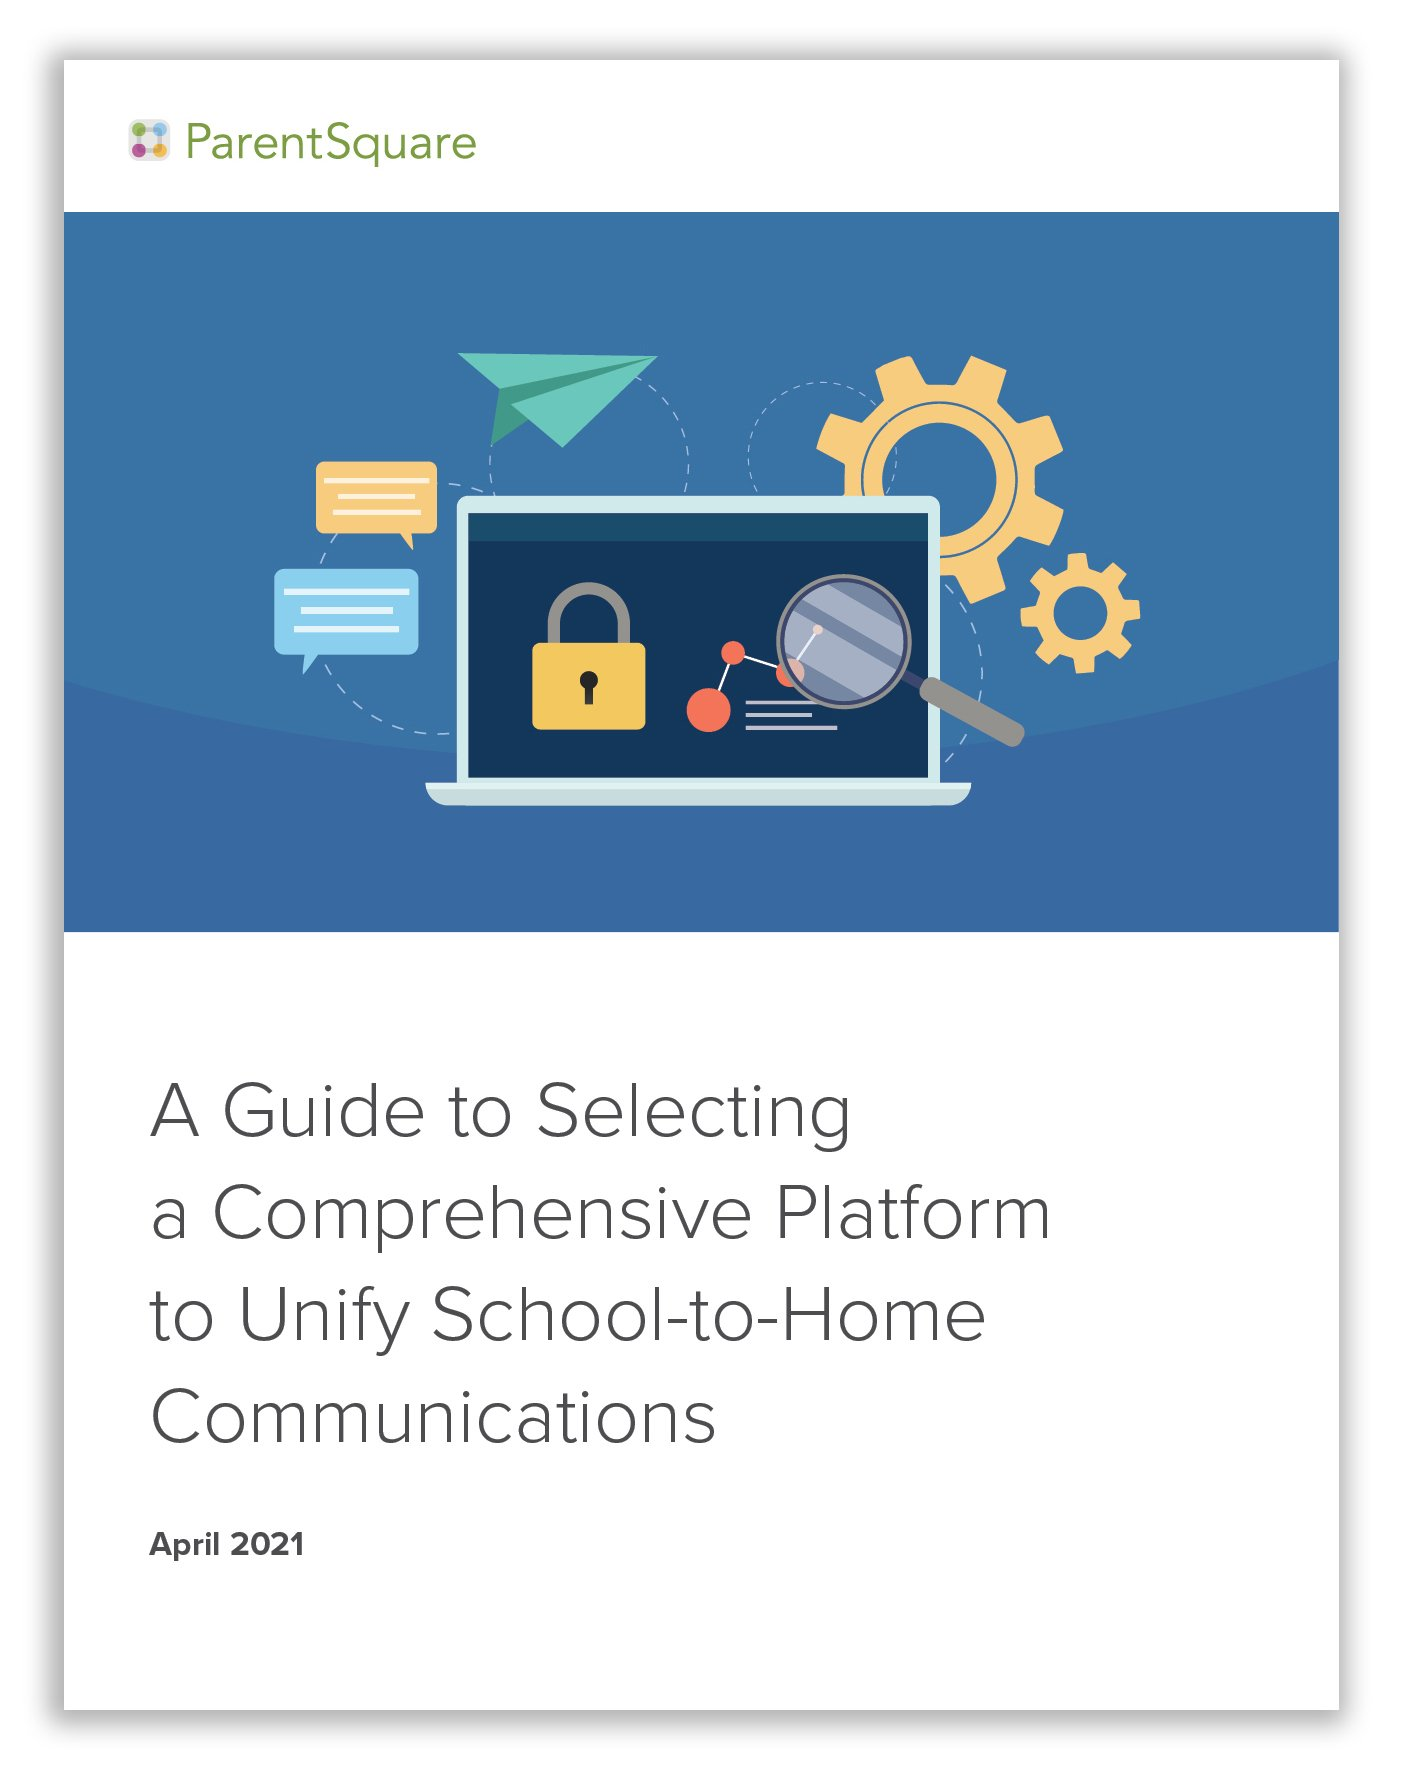 New Guide from ParentSquare Helps K-12 Districts Streamline School-Home Communications